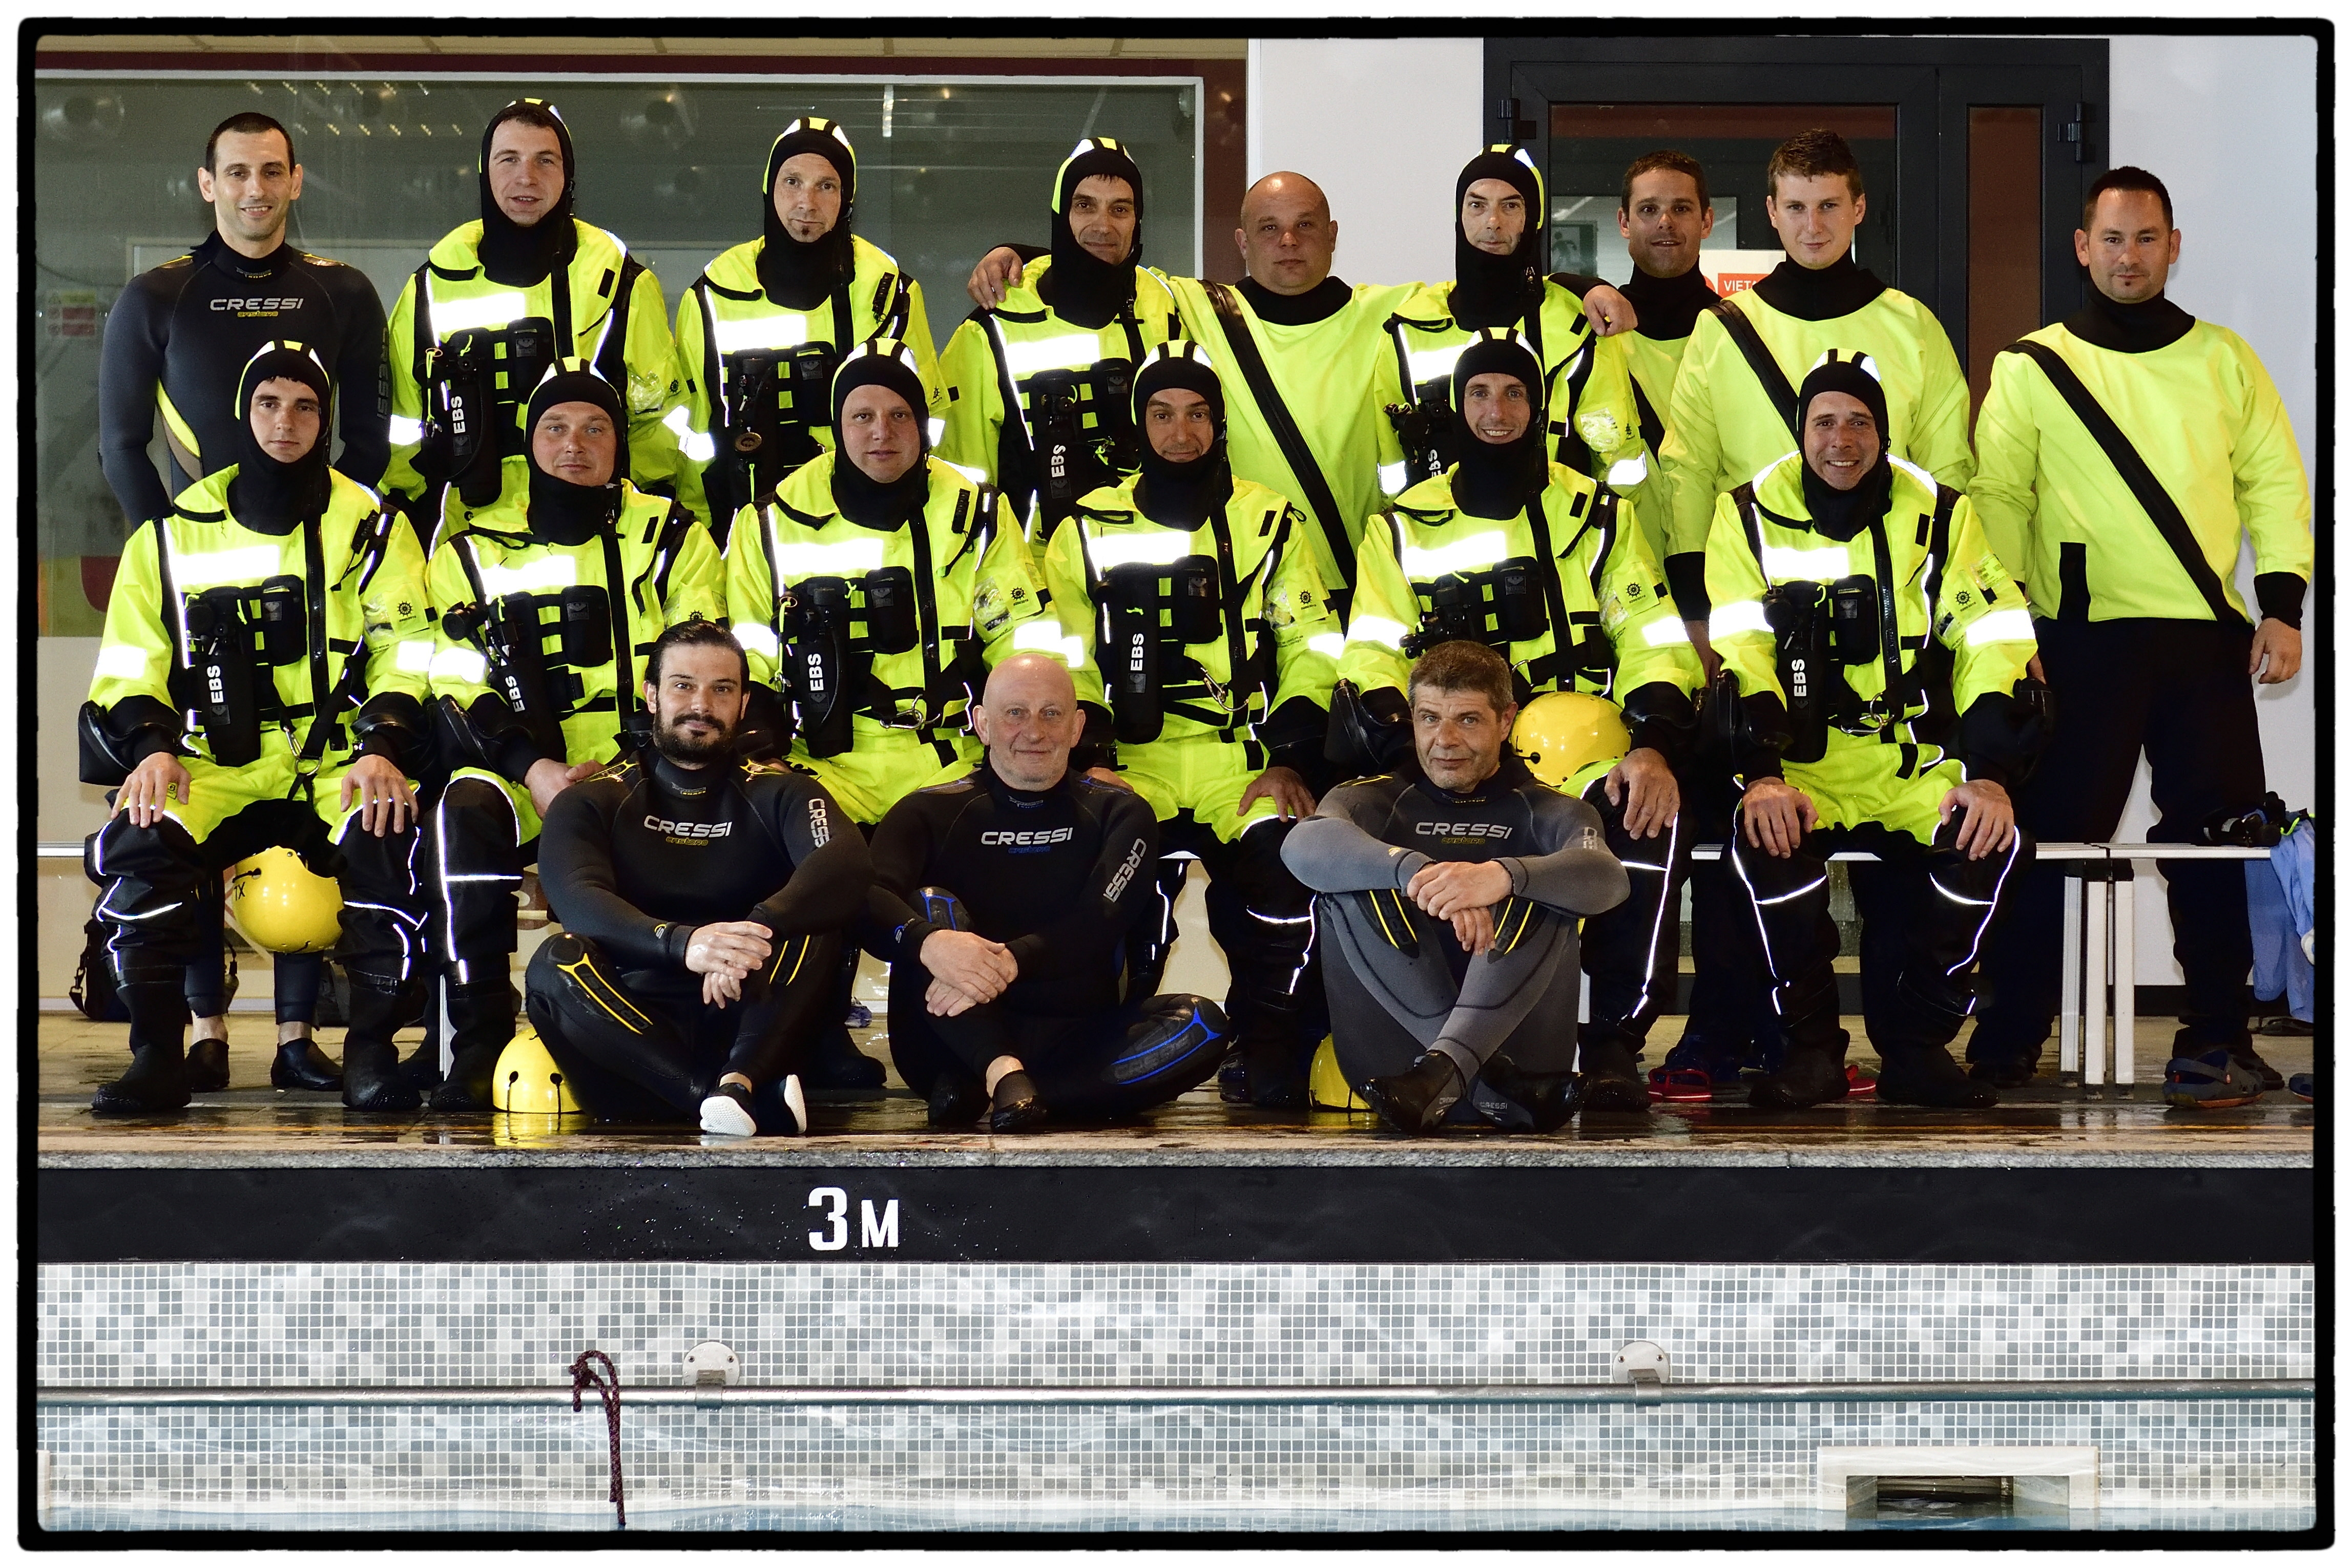 Image - Sea Suvival and Helodunker trainings in Pavia